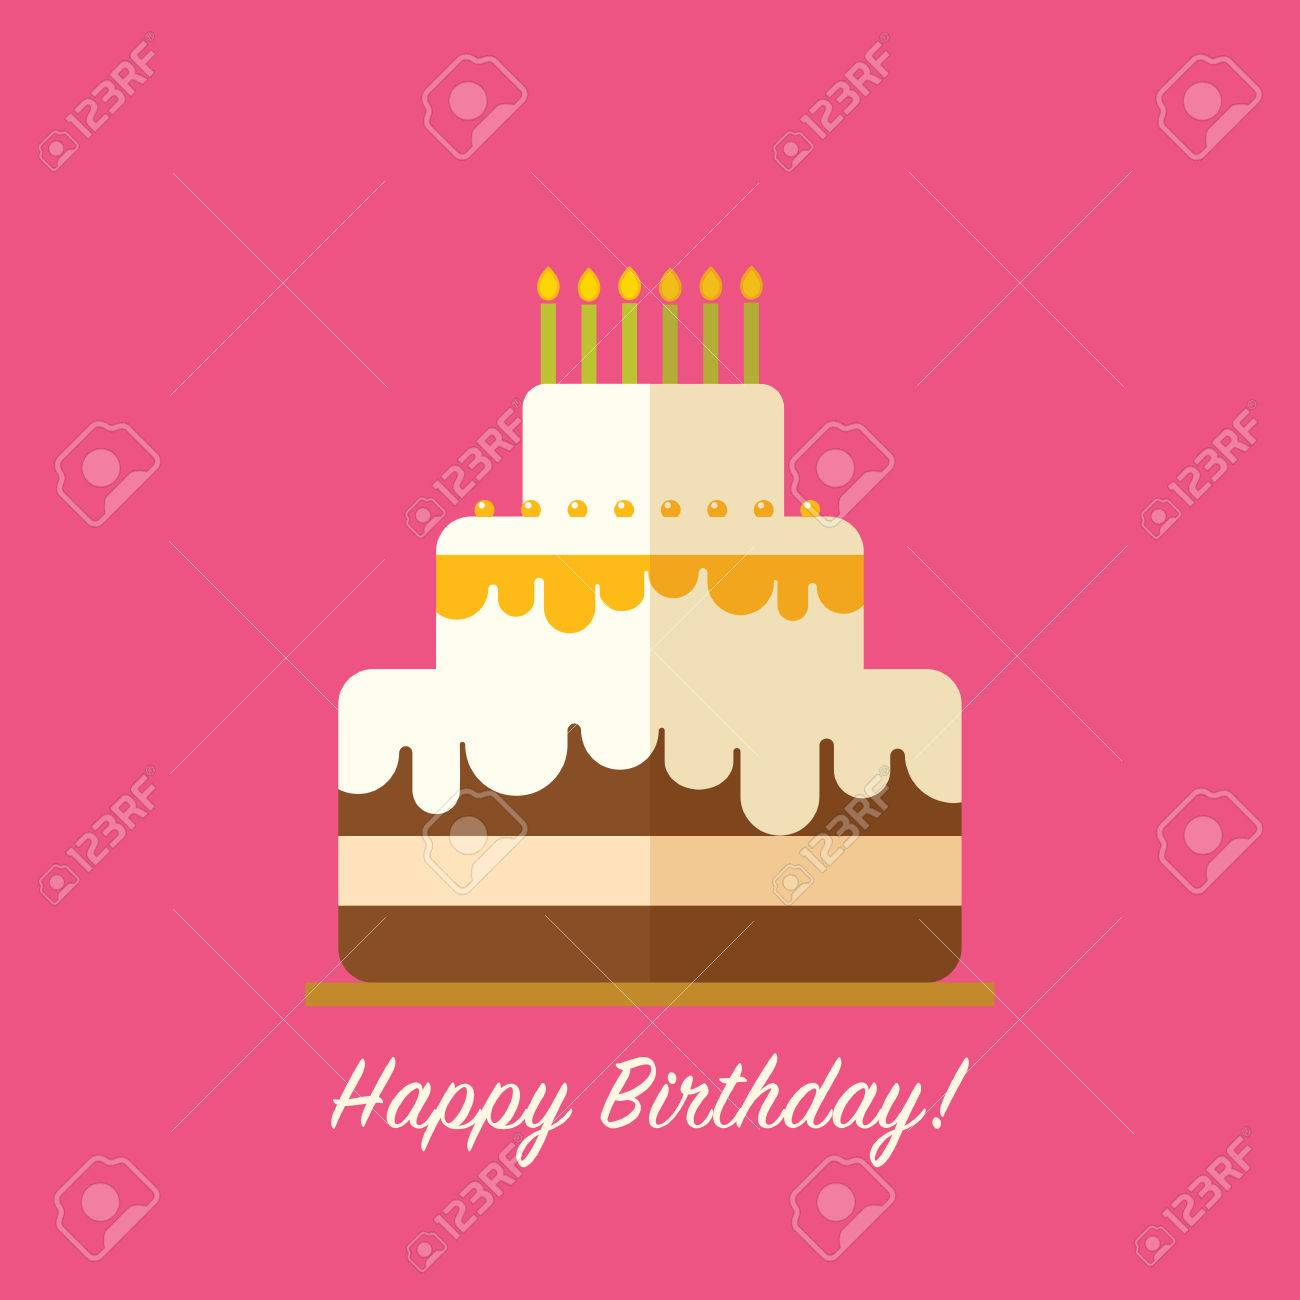 Happy Birthday Cake For Greeting Card Design Isolated In Flat Style Stock Vector